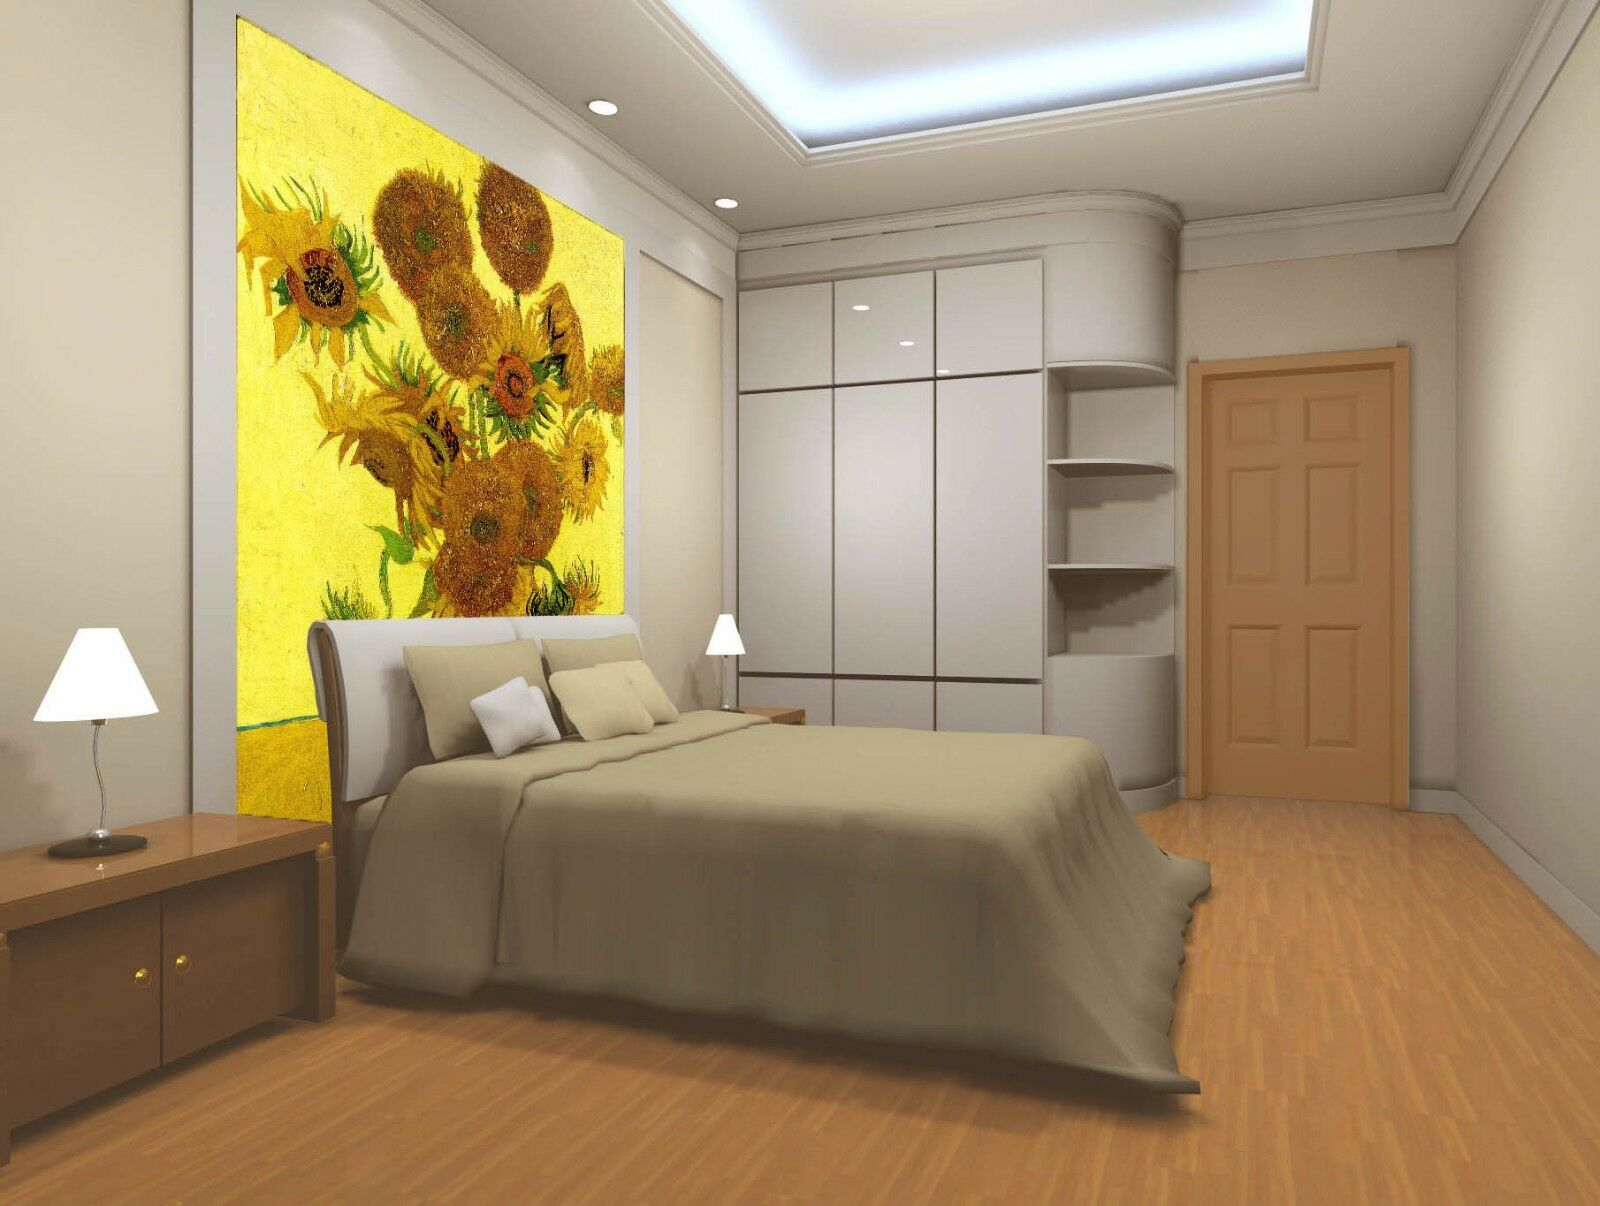 3D Sunflower 439 Wallpaper Murals Wall Print Wall Mural AJ WALL AU Summer